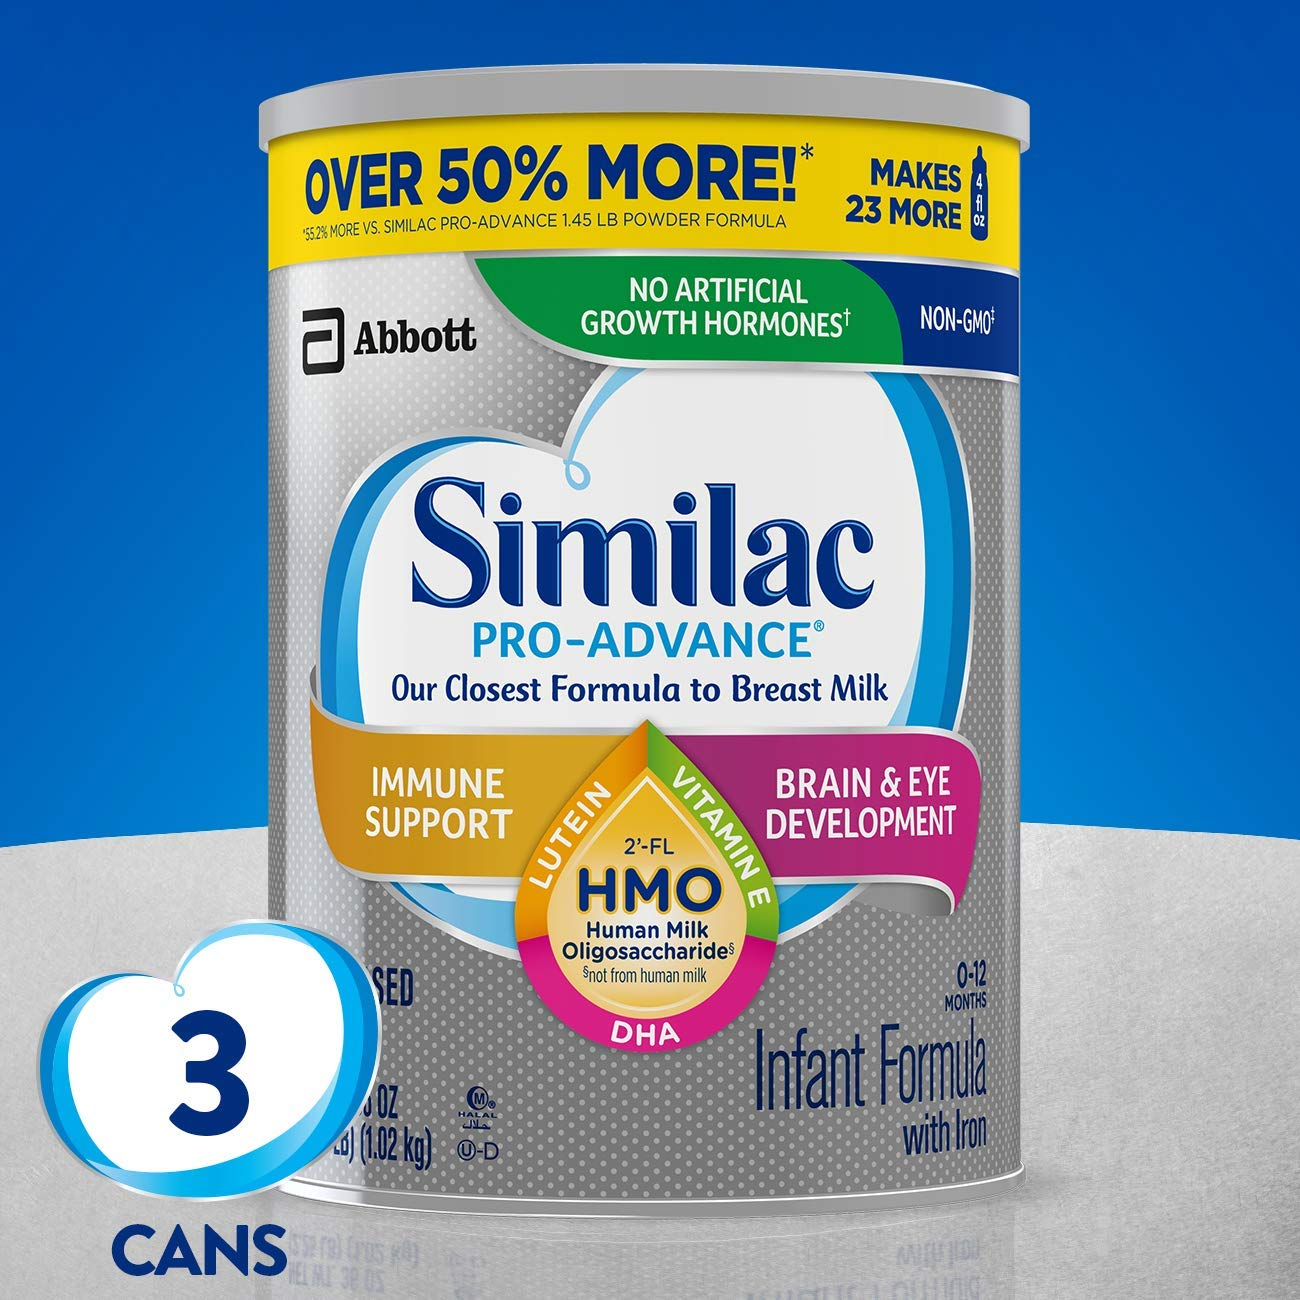 (35% Off) 3 Pack - Similac Pro-Advance Non-GMO Infant Formula with Iron, with 2'-FL HMO, for Immune Support, Baby Formula, Powder, 36 Oz, Pack of 3 (One-Month Supply) $77.76